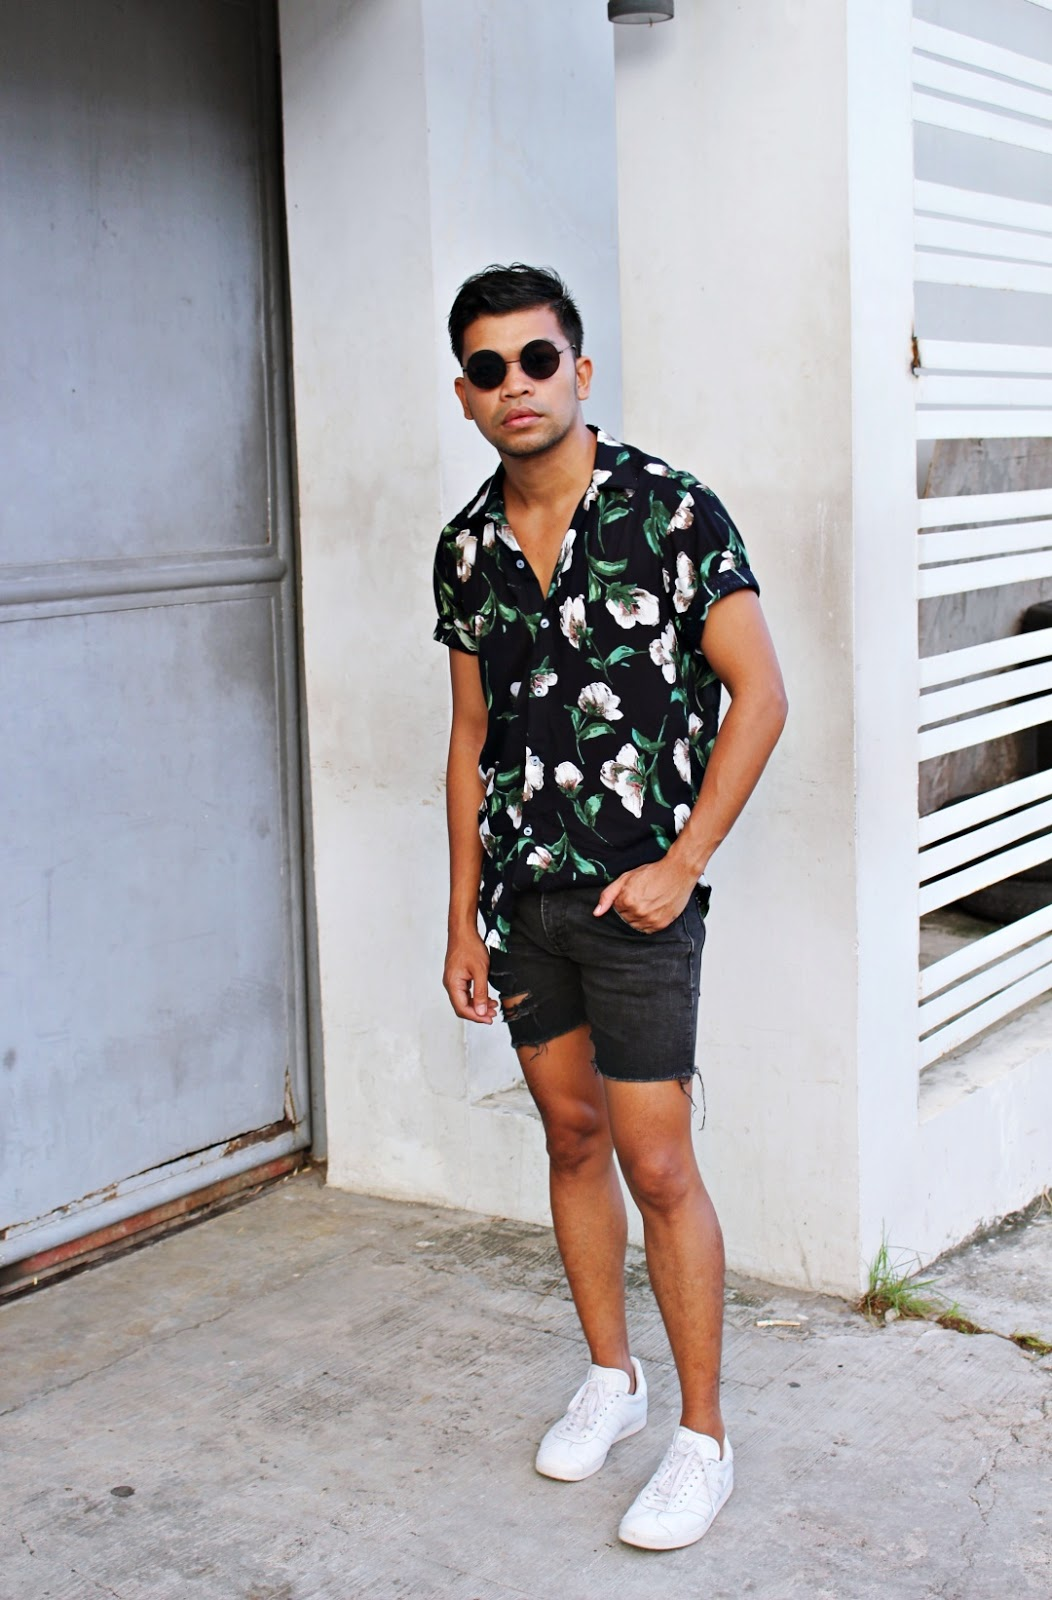 FASHION-CEBU-BLOGGERS-ALMOSTABLOGGER-MEN.jpg